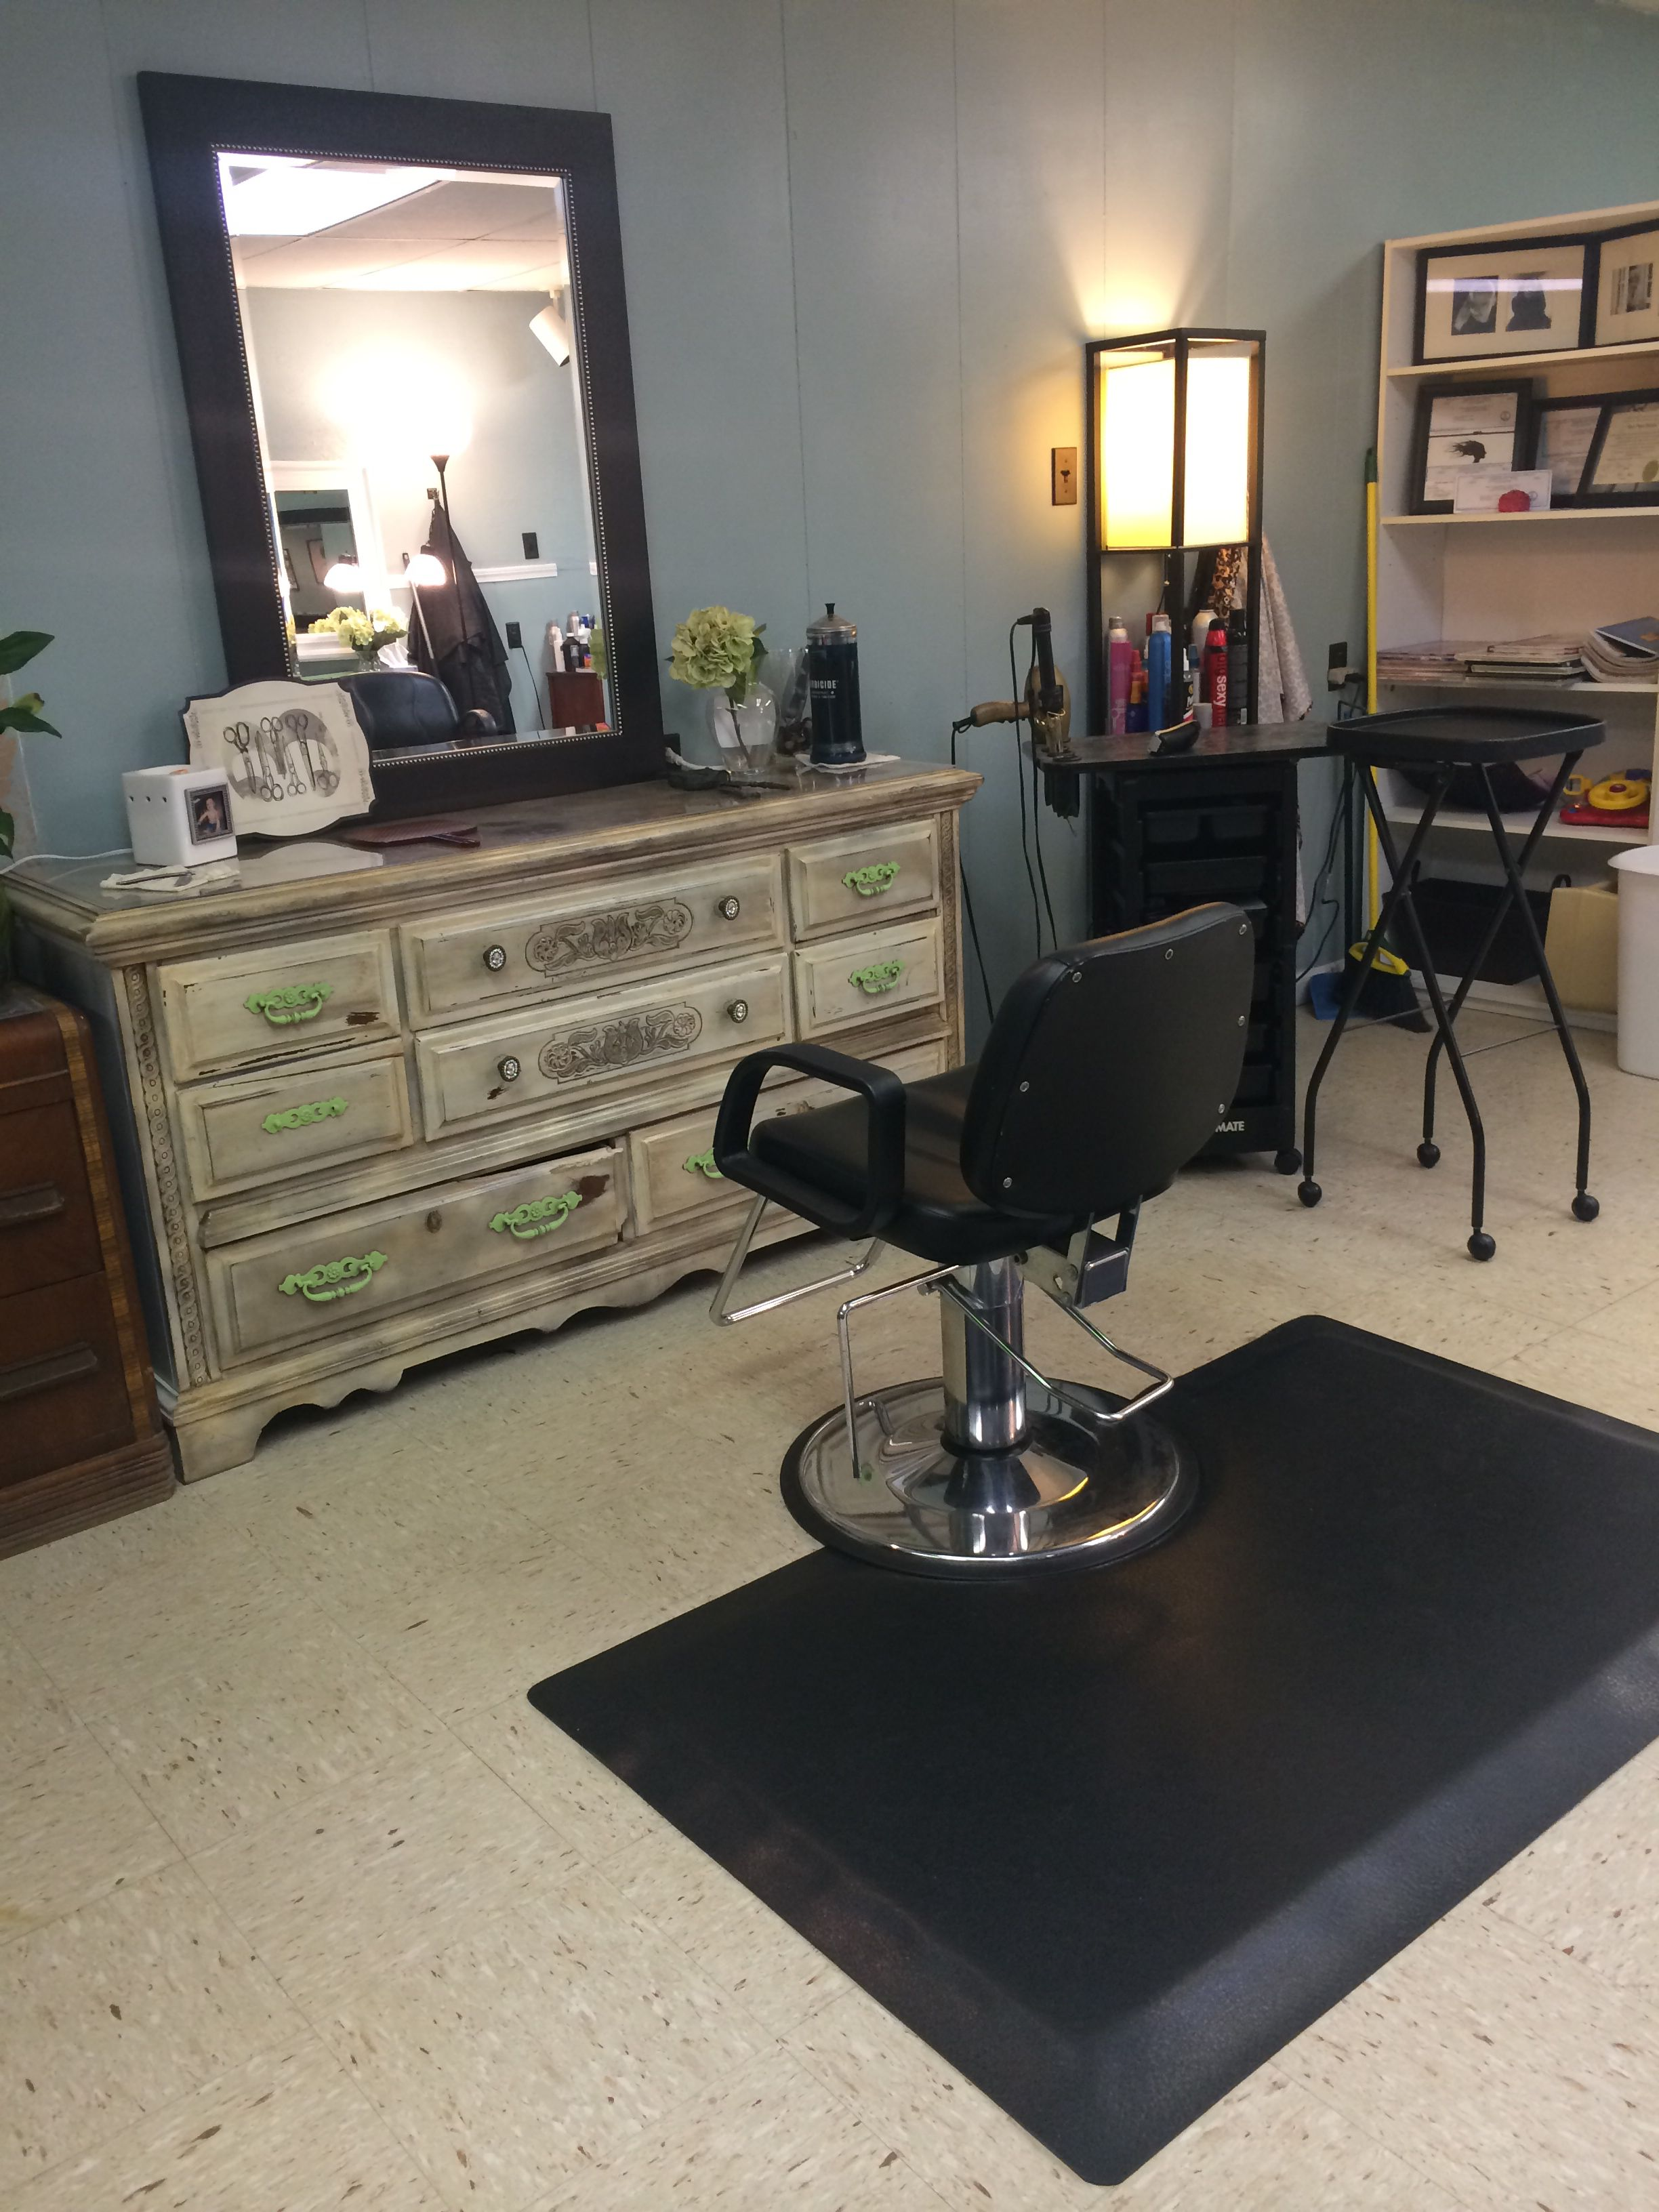 Finished with my distressed vintage salon styling station ...